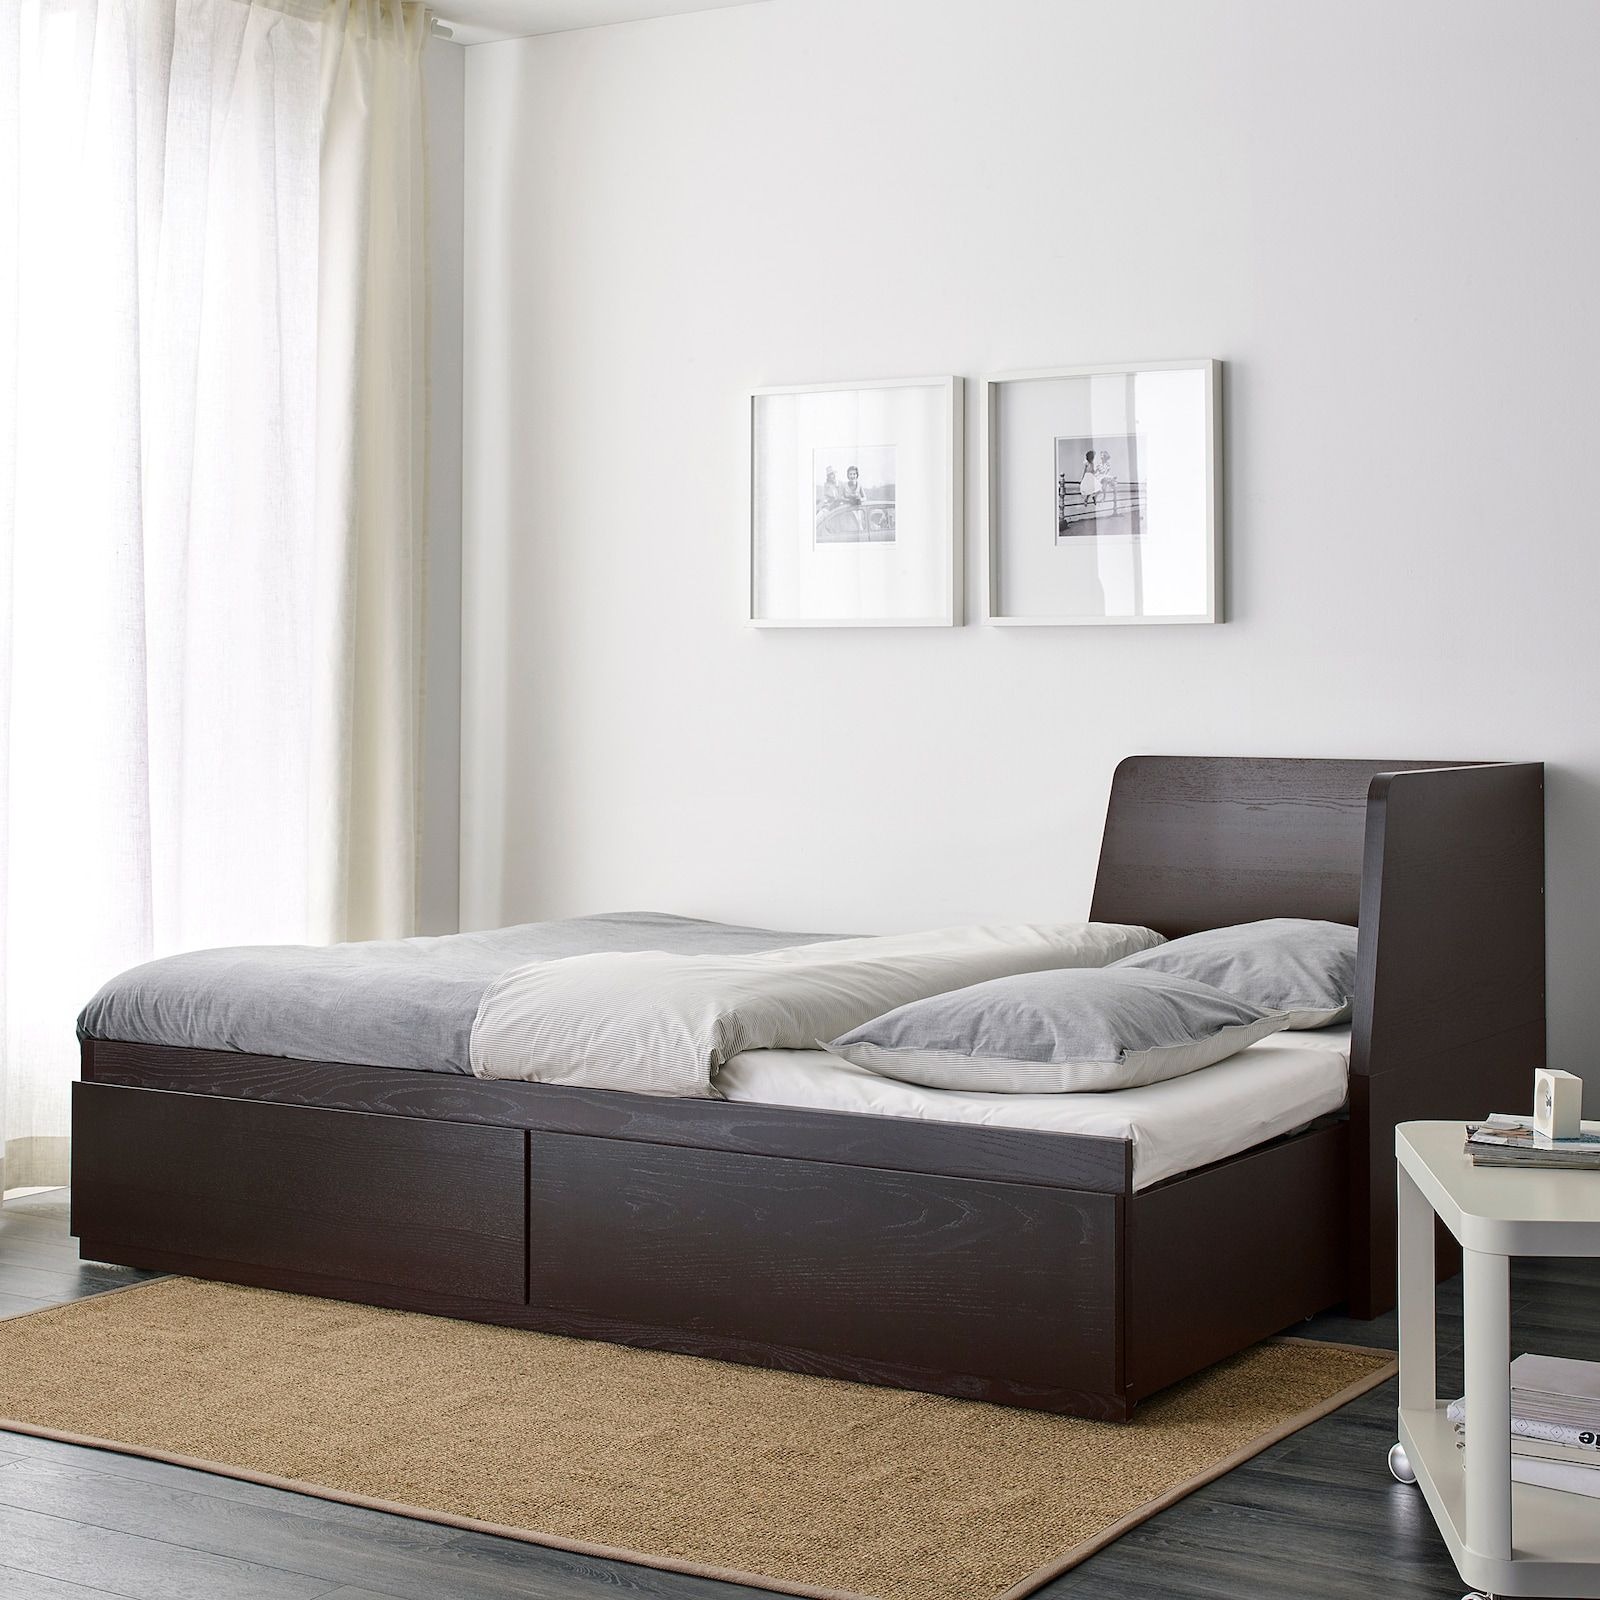 FLEKKE Daybed frame with 2 drawers, blackbrown, Twin